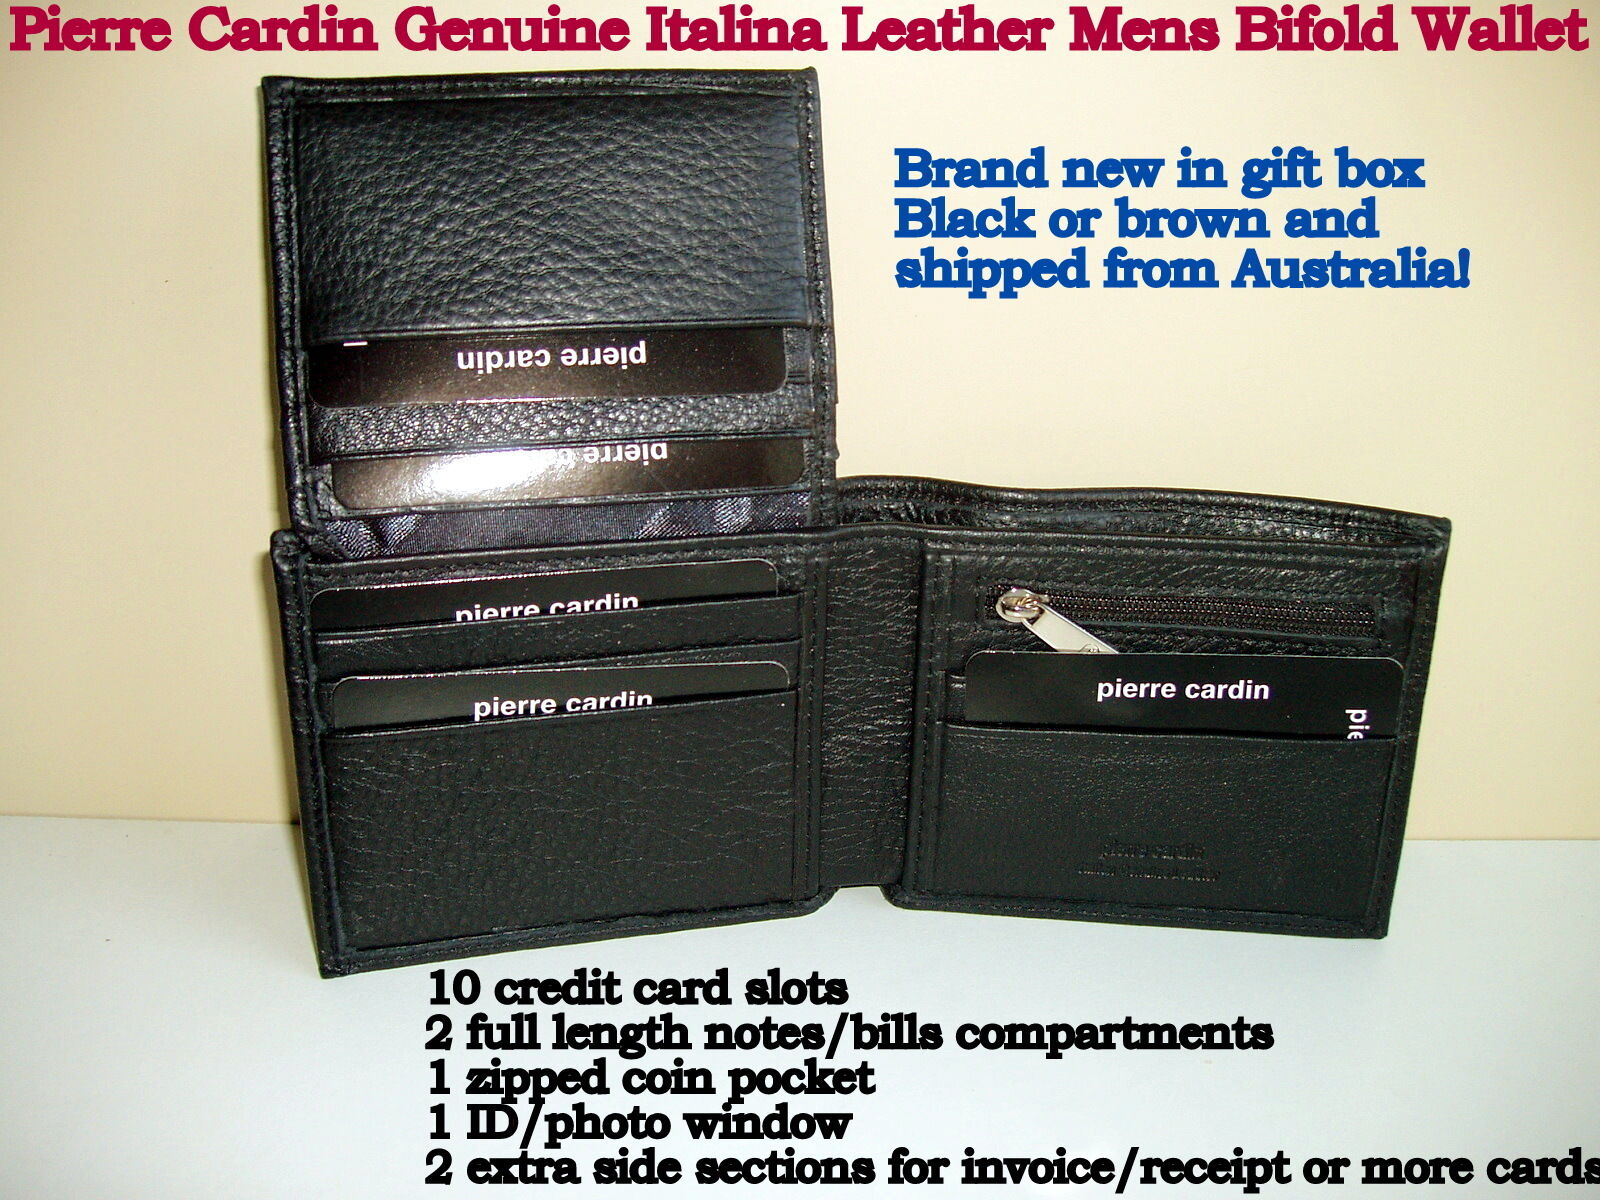 5734717cd970 Pierre Cardin Men's Black Leather Wallet And Gift Boxes   Stanford ...